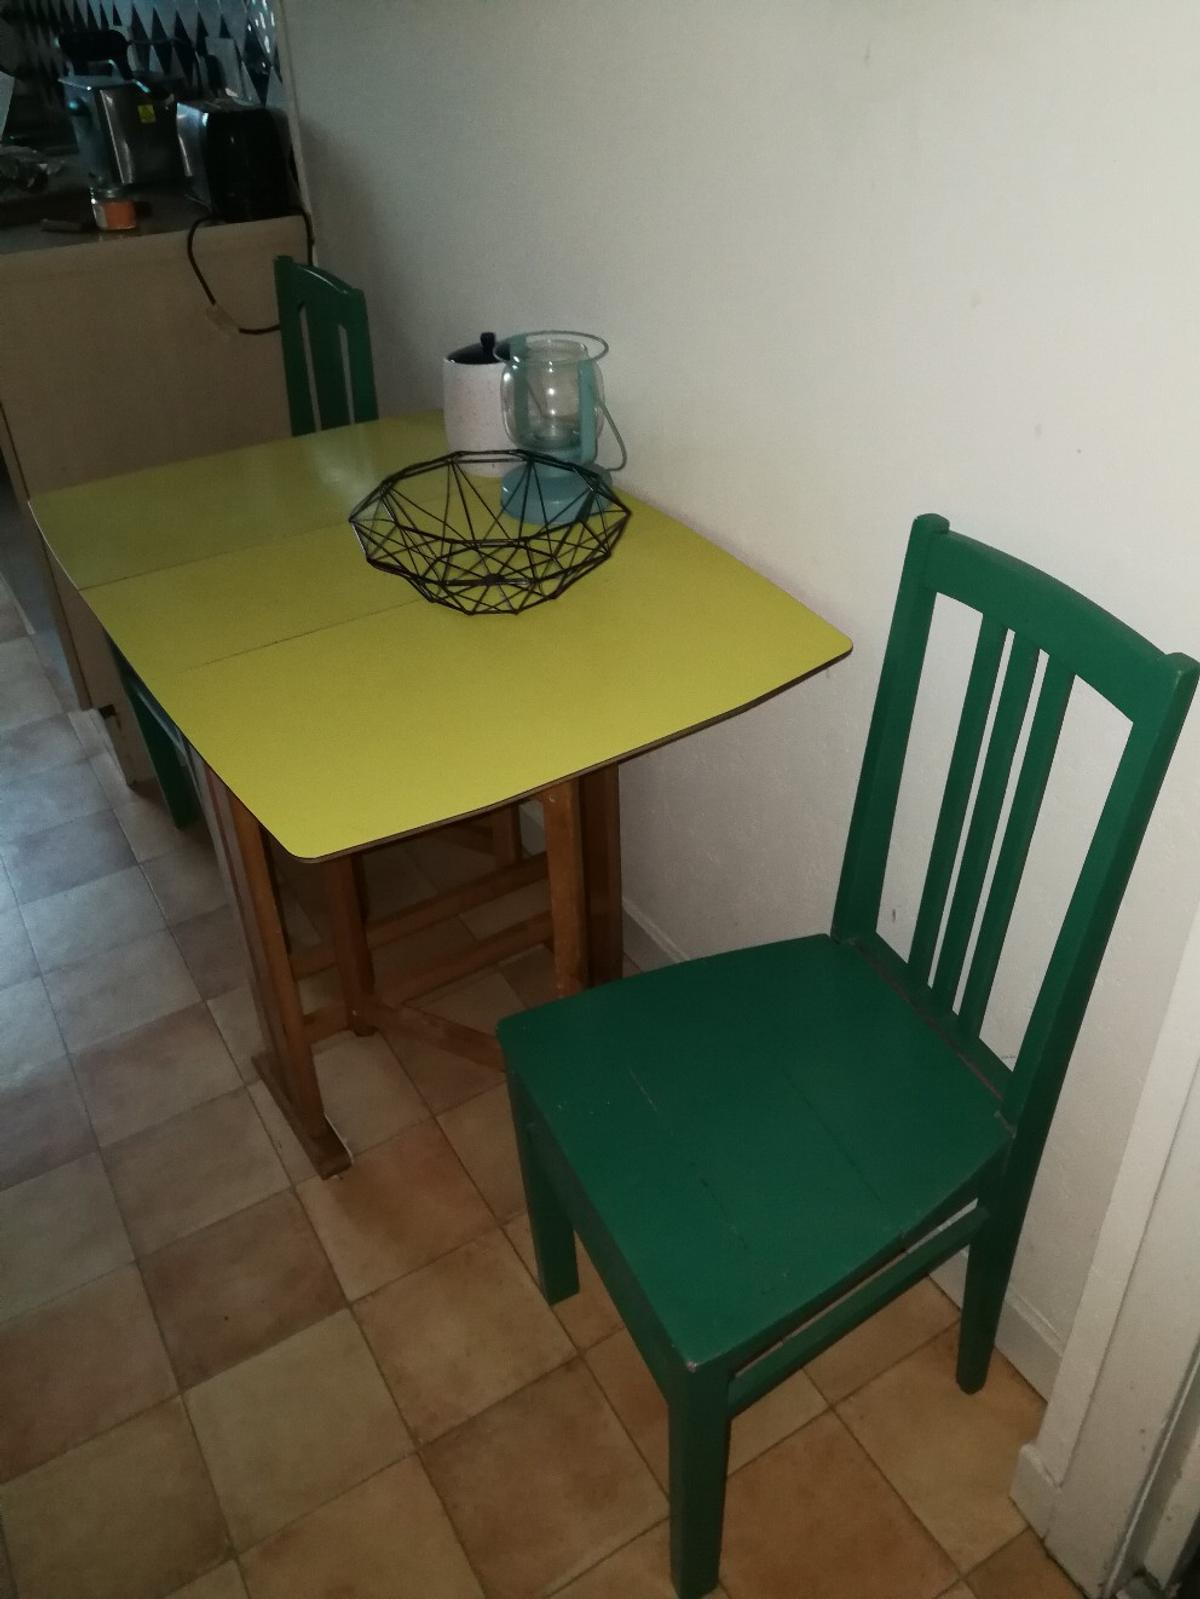 - Small Folding Kitchen Table + 2 Chairs In G4 Woodlands Für 50,00